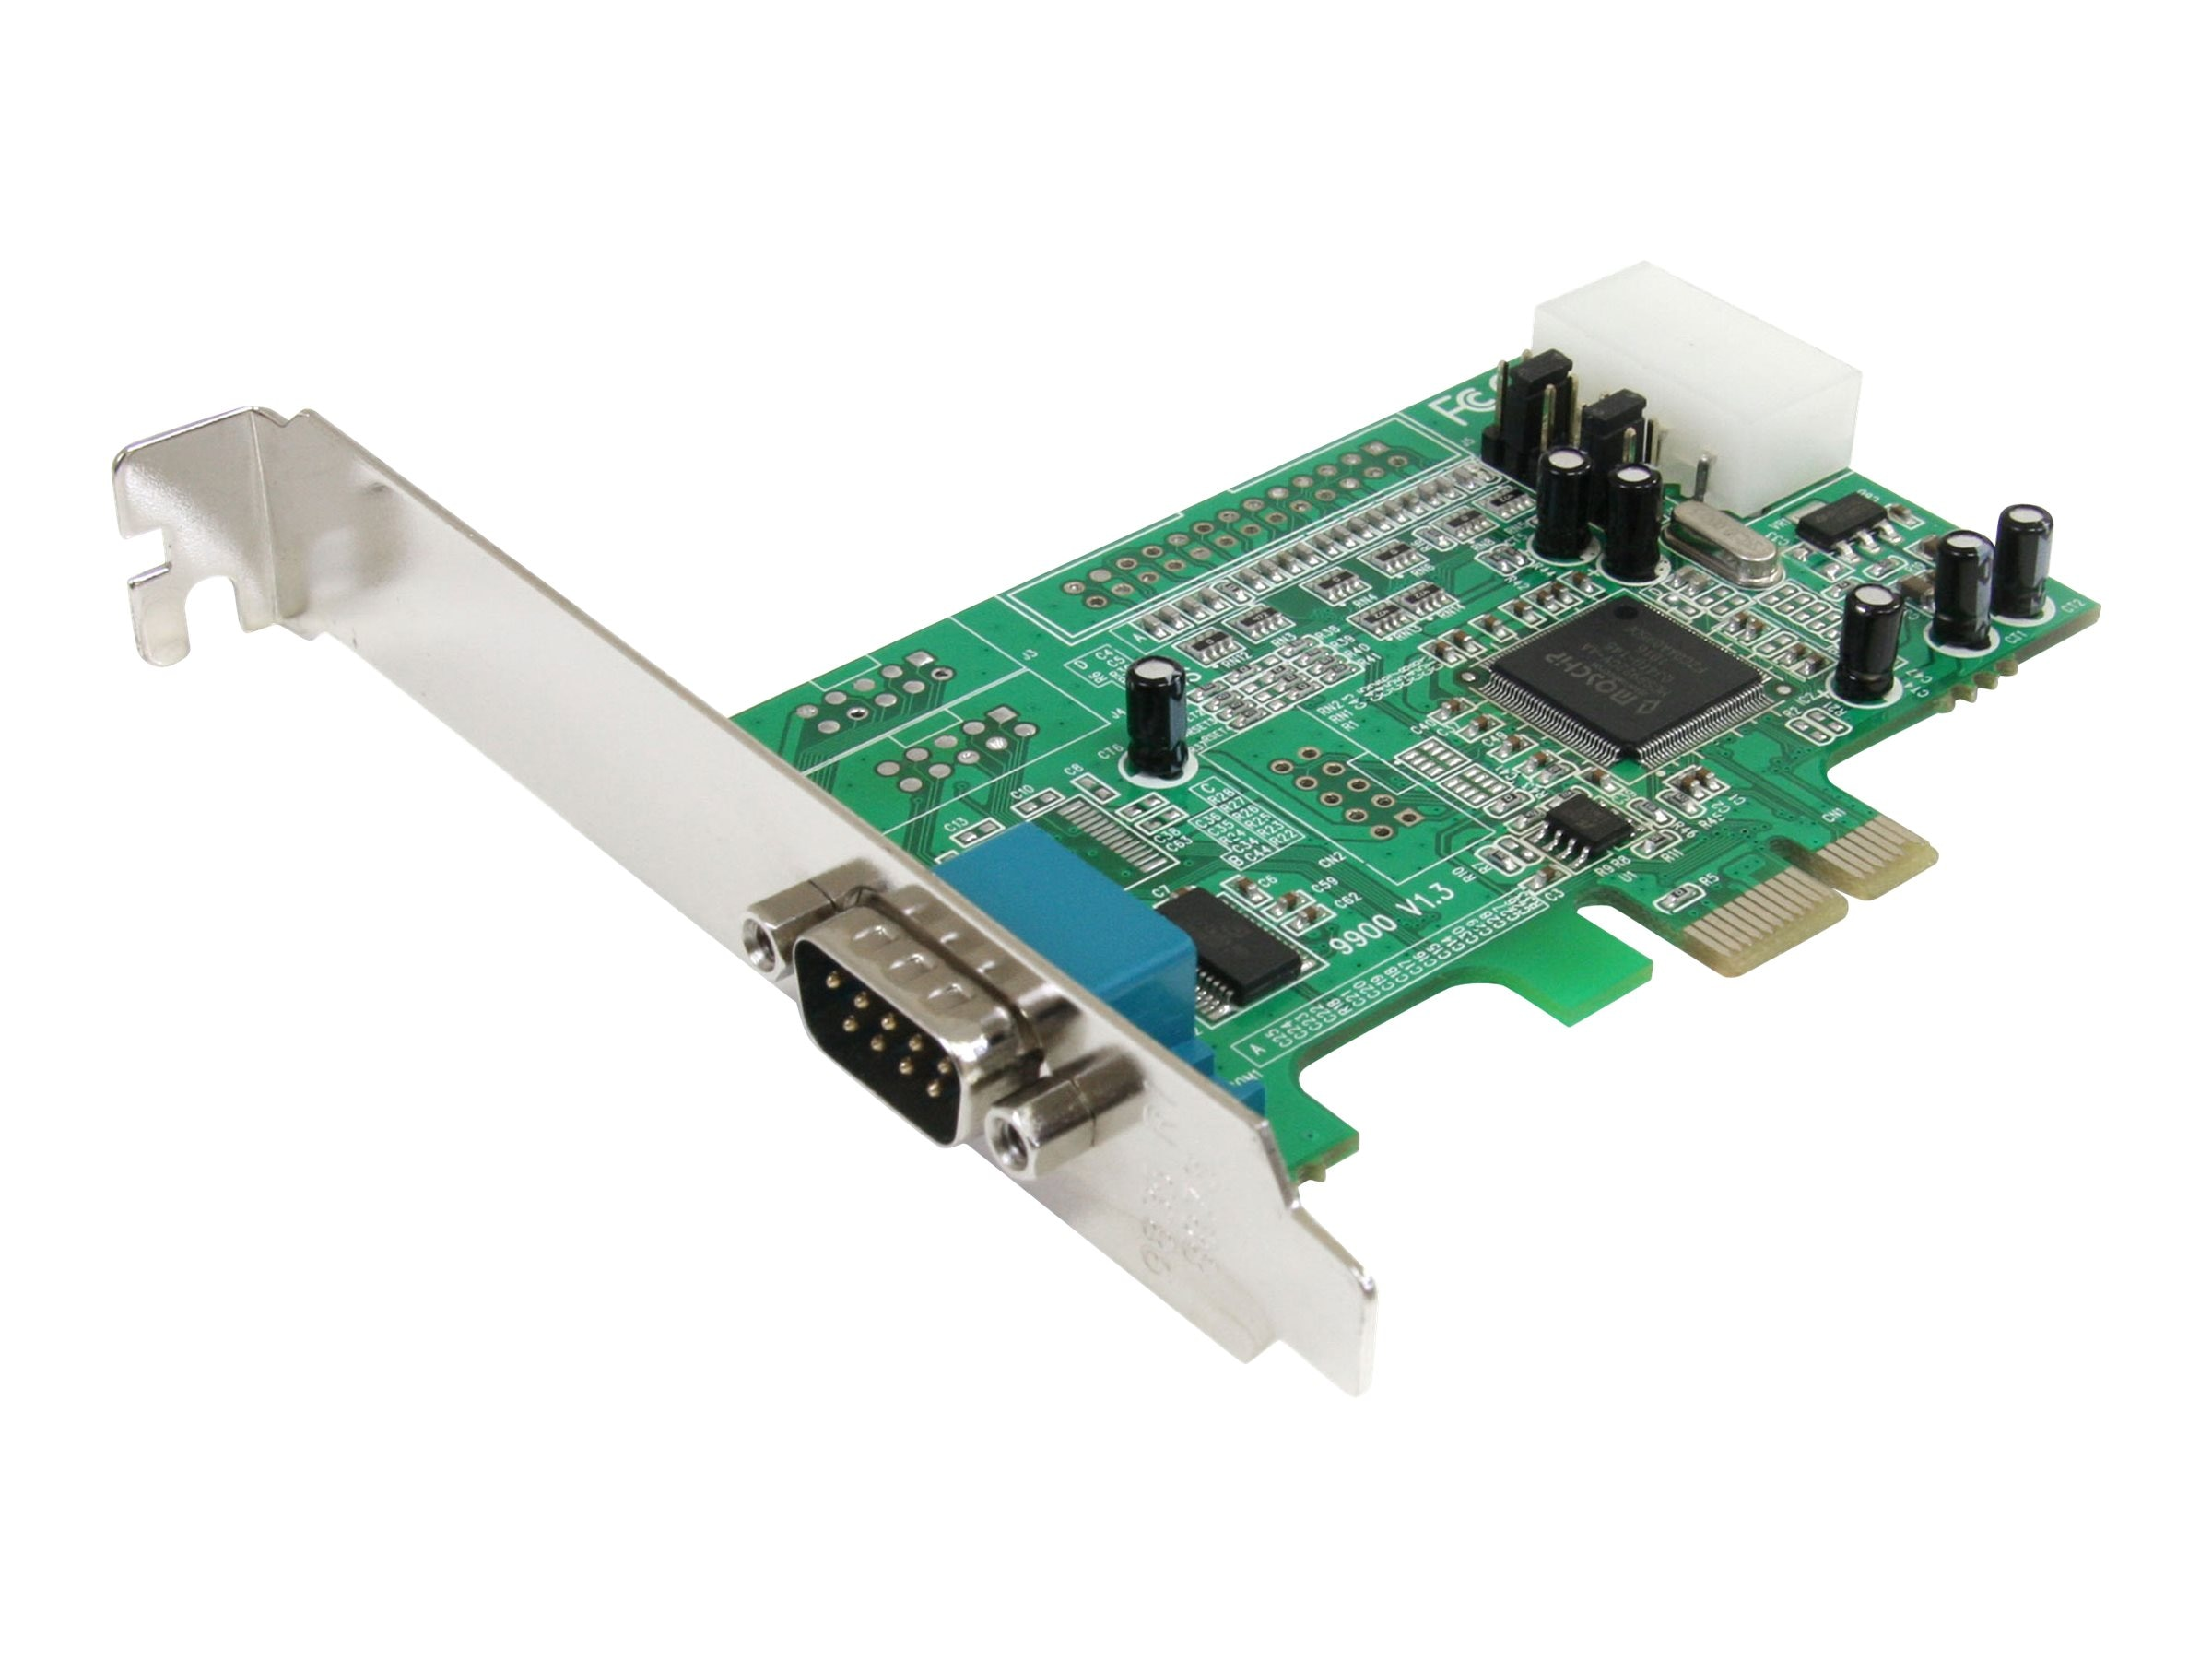 StarTech.com 1-Port Native PCI Express RS232 Serial Adapter Card with 16550 UART